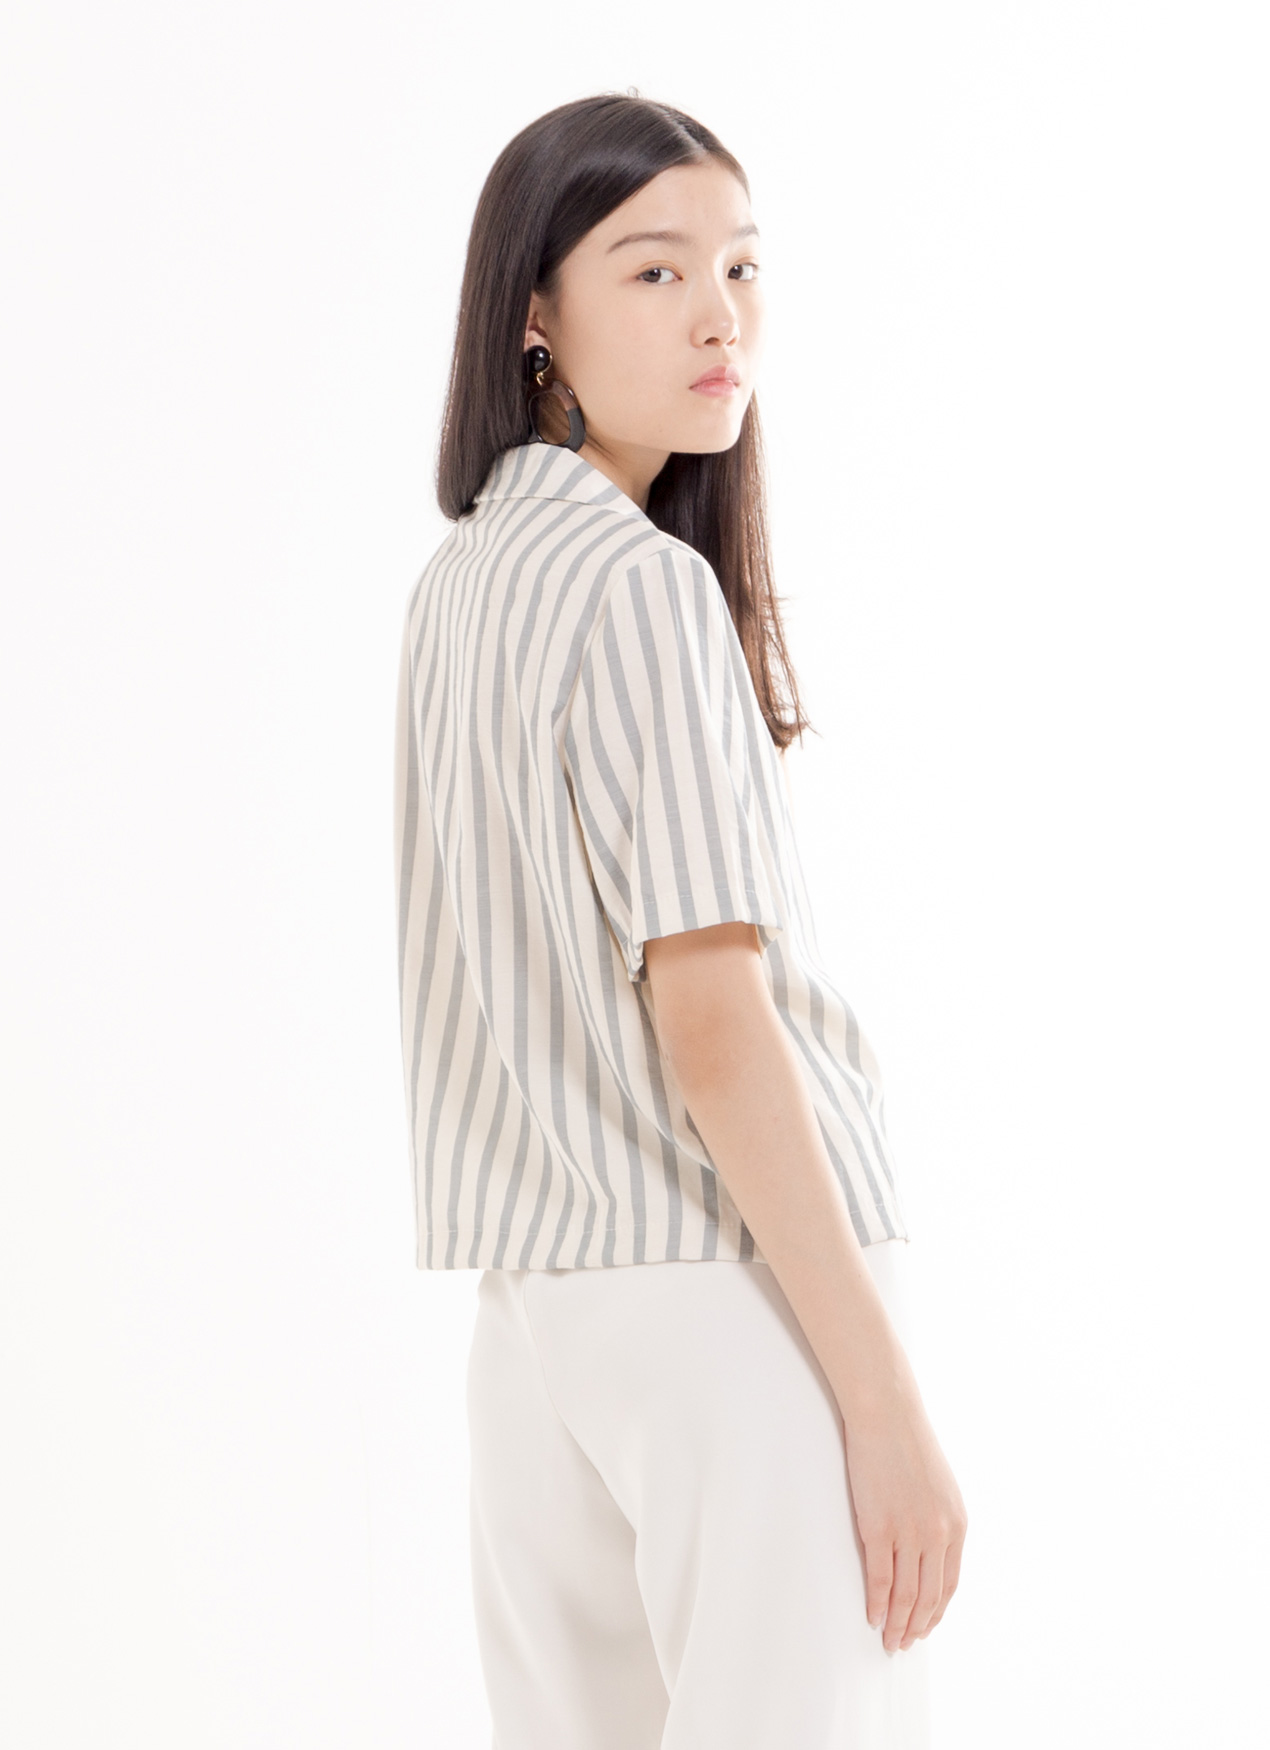 BOWN Rhymee Top - Stripe Blue